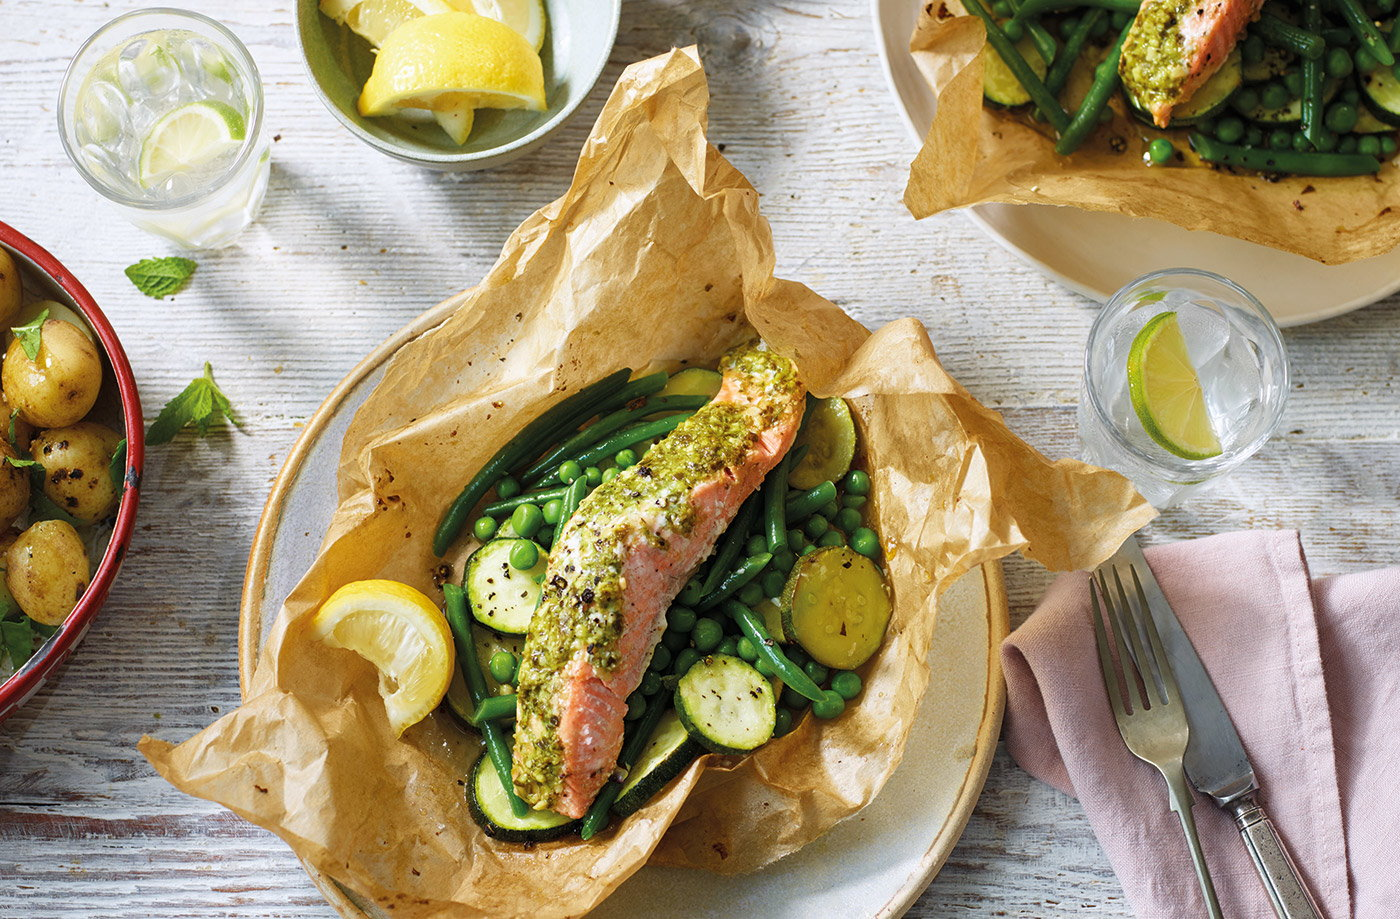 Pesto salmon parcels with green veg recipe